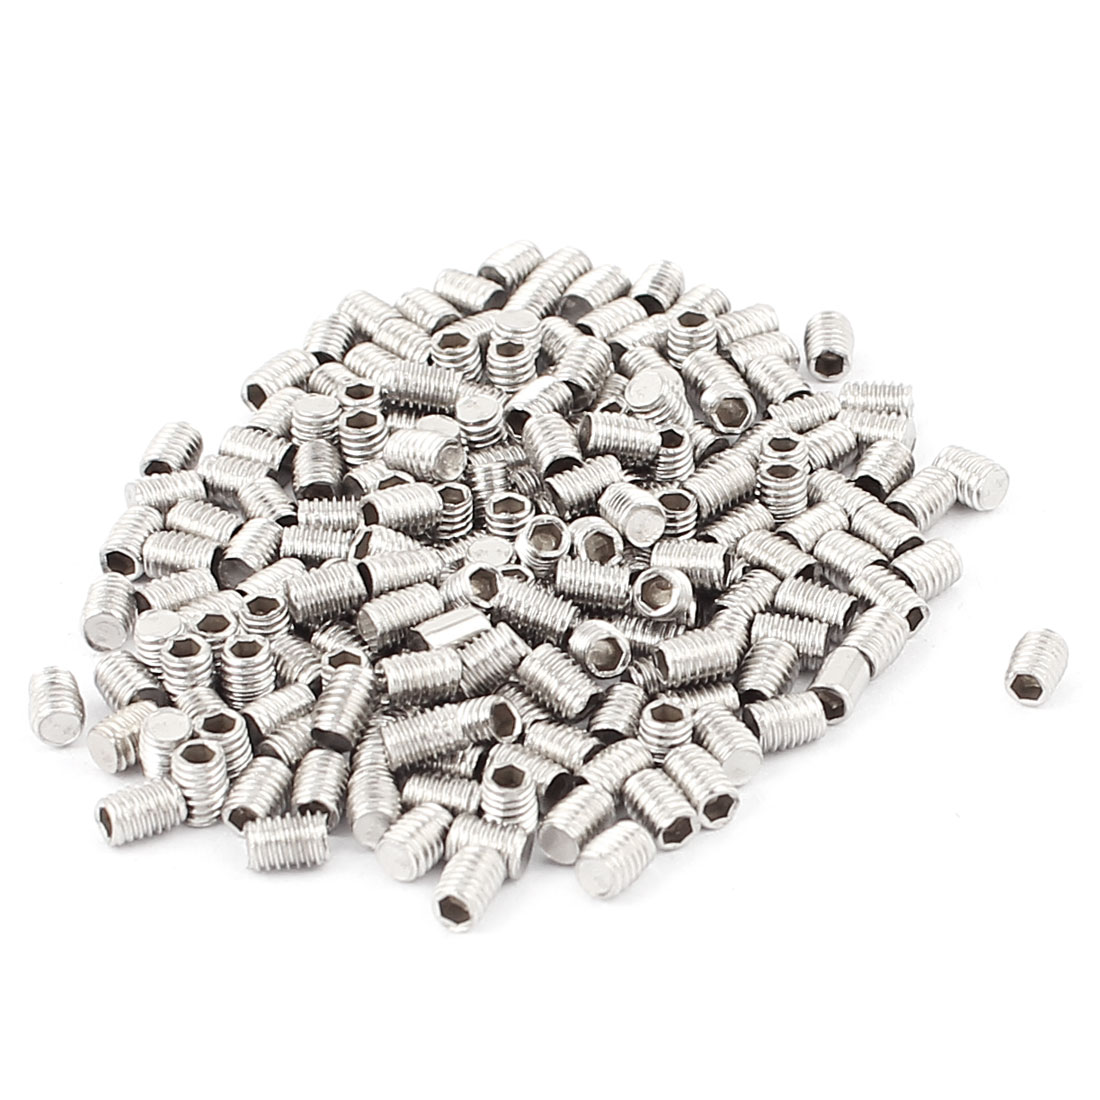 200pcs Stainless Steel Flat Point Hex Socket Grub Screws M3x4mm